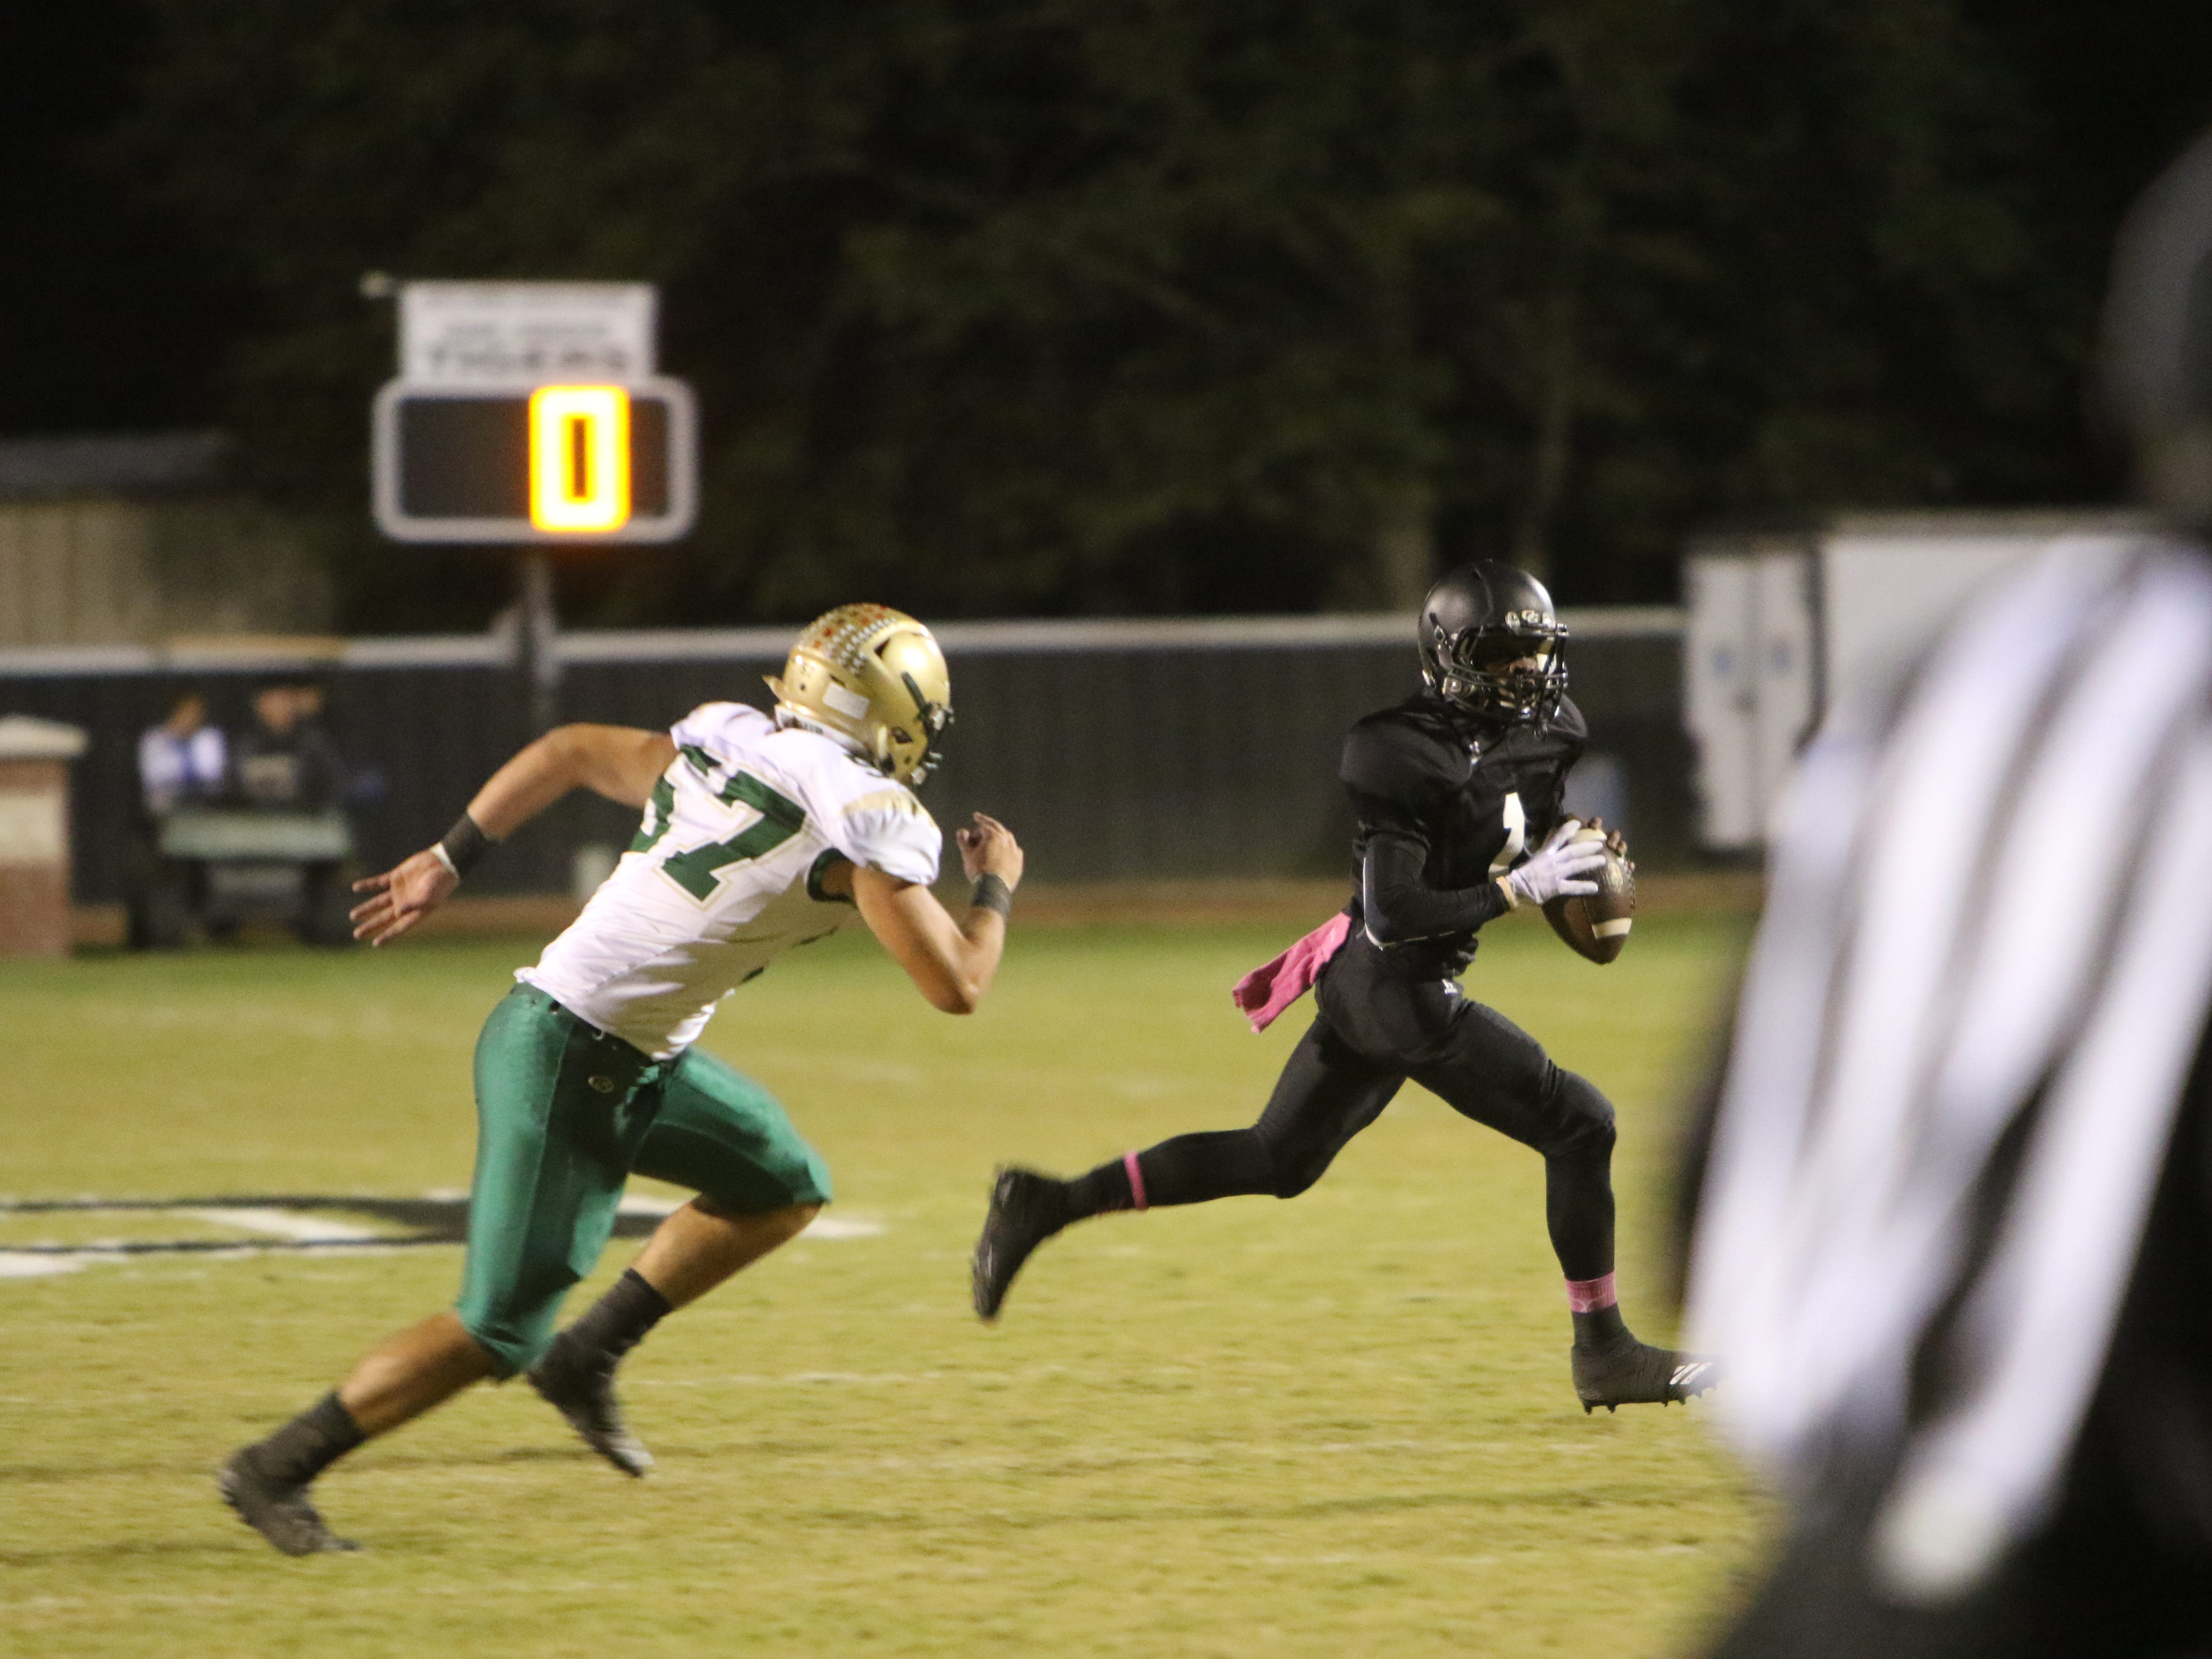 The Ouachita Christian Eagles traveled to Oak Grove to play the Tigers friday night, October 12.